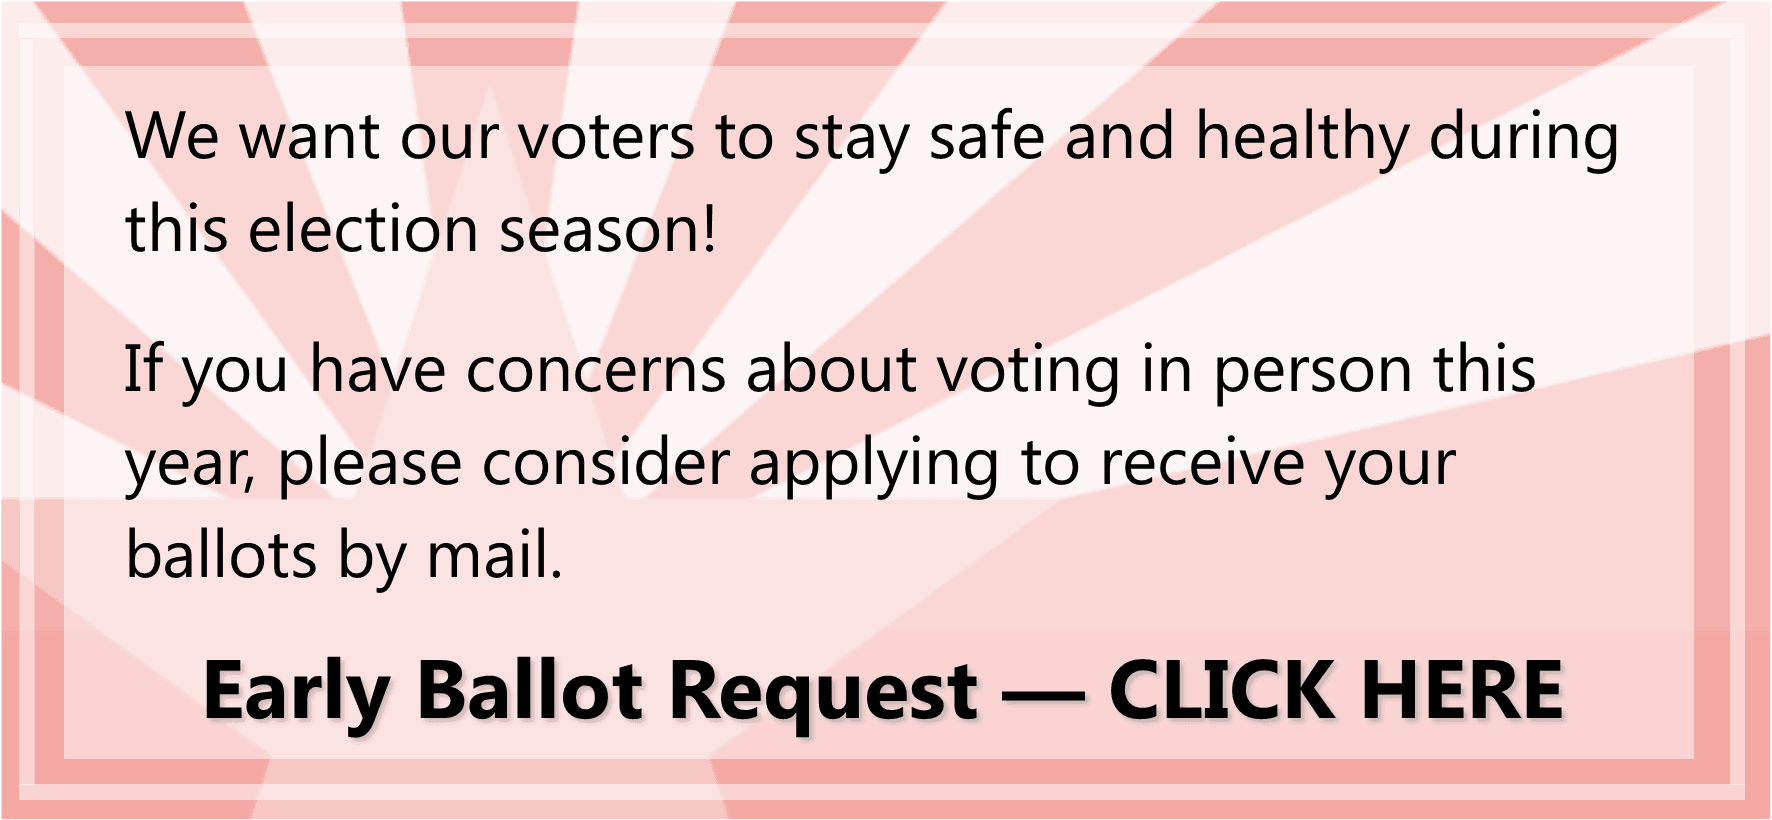 Click this so you can request an early ballot for either the Primary or General elections.